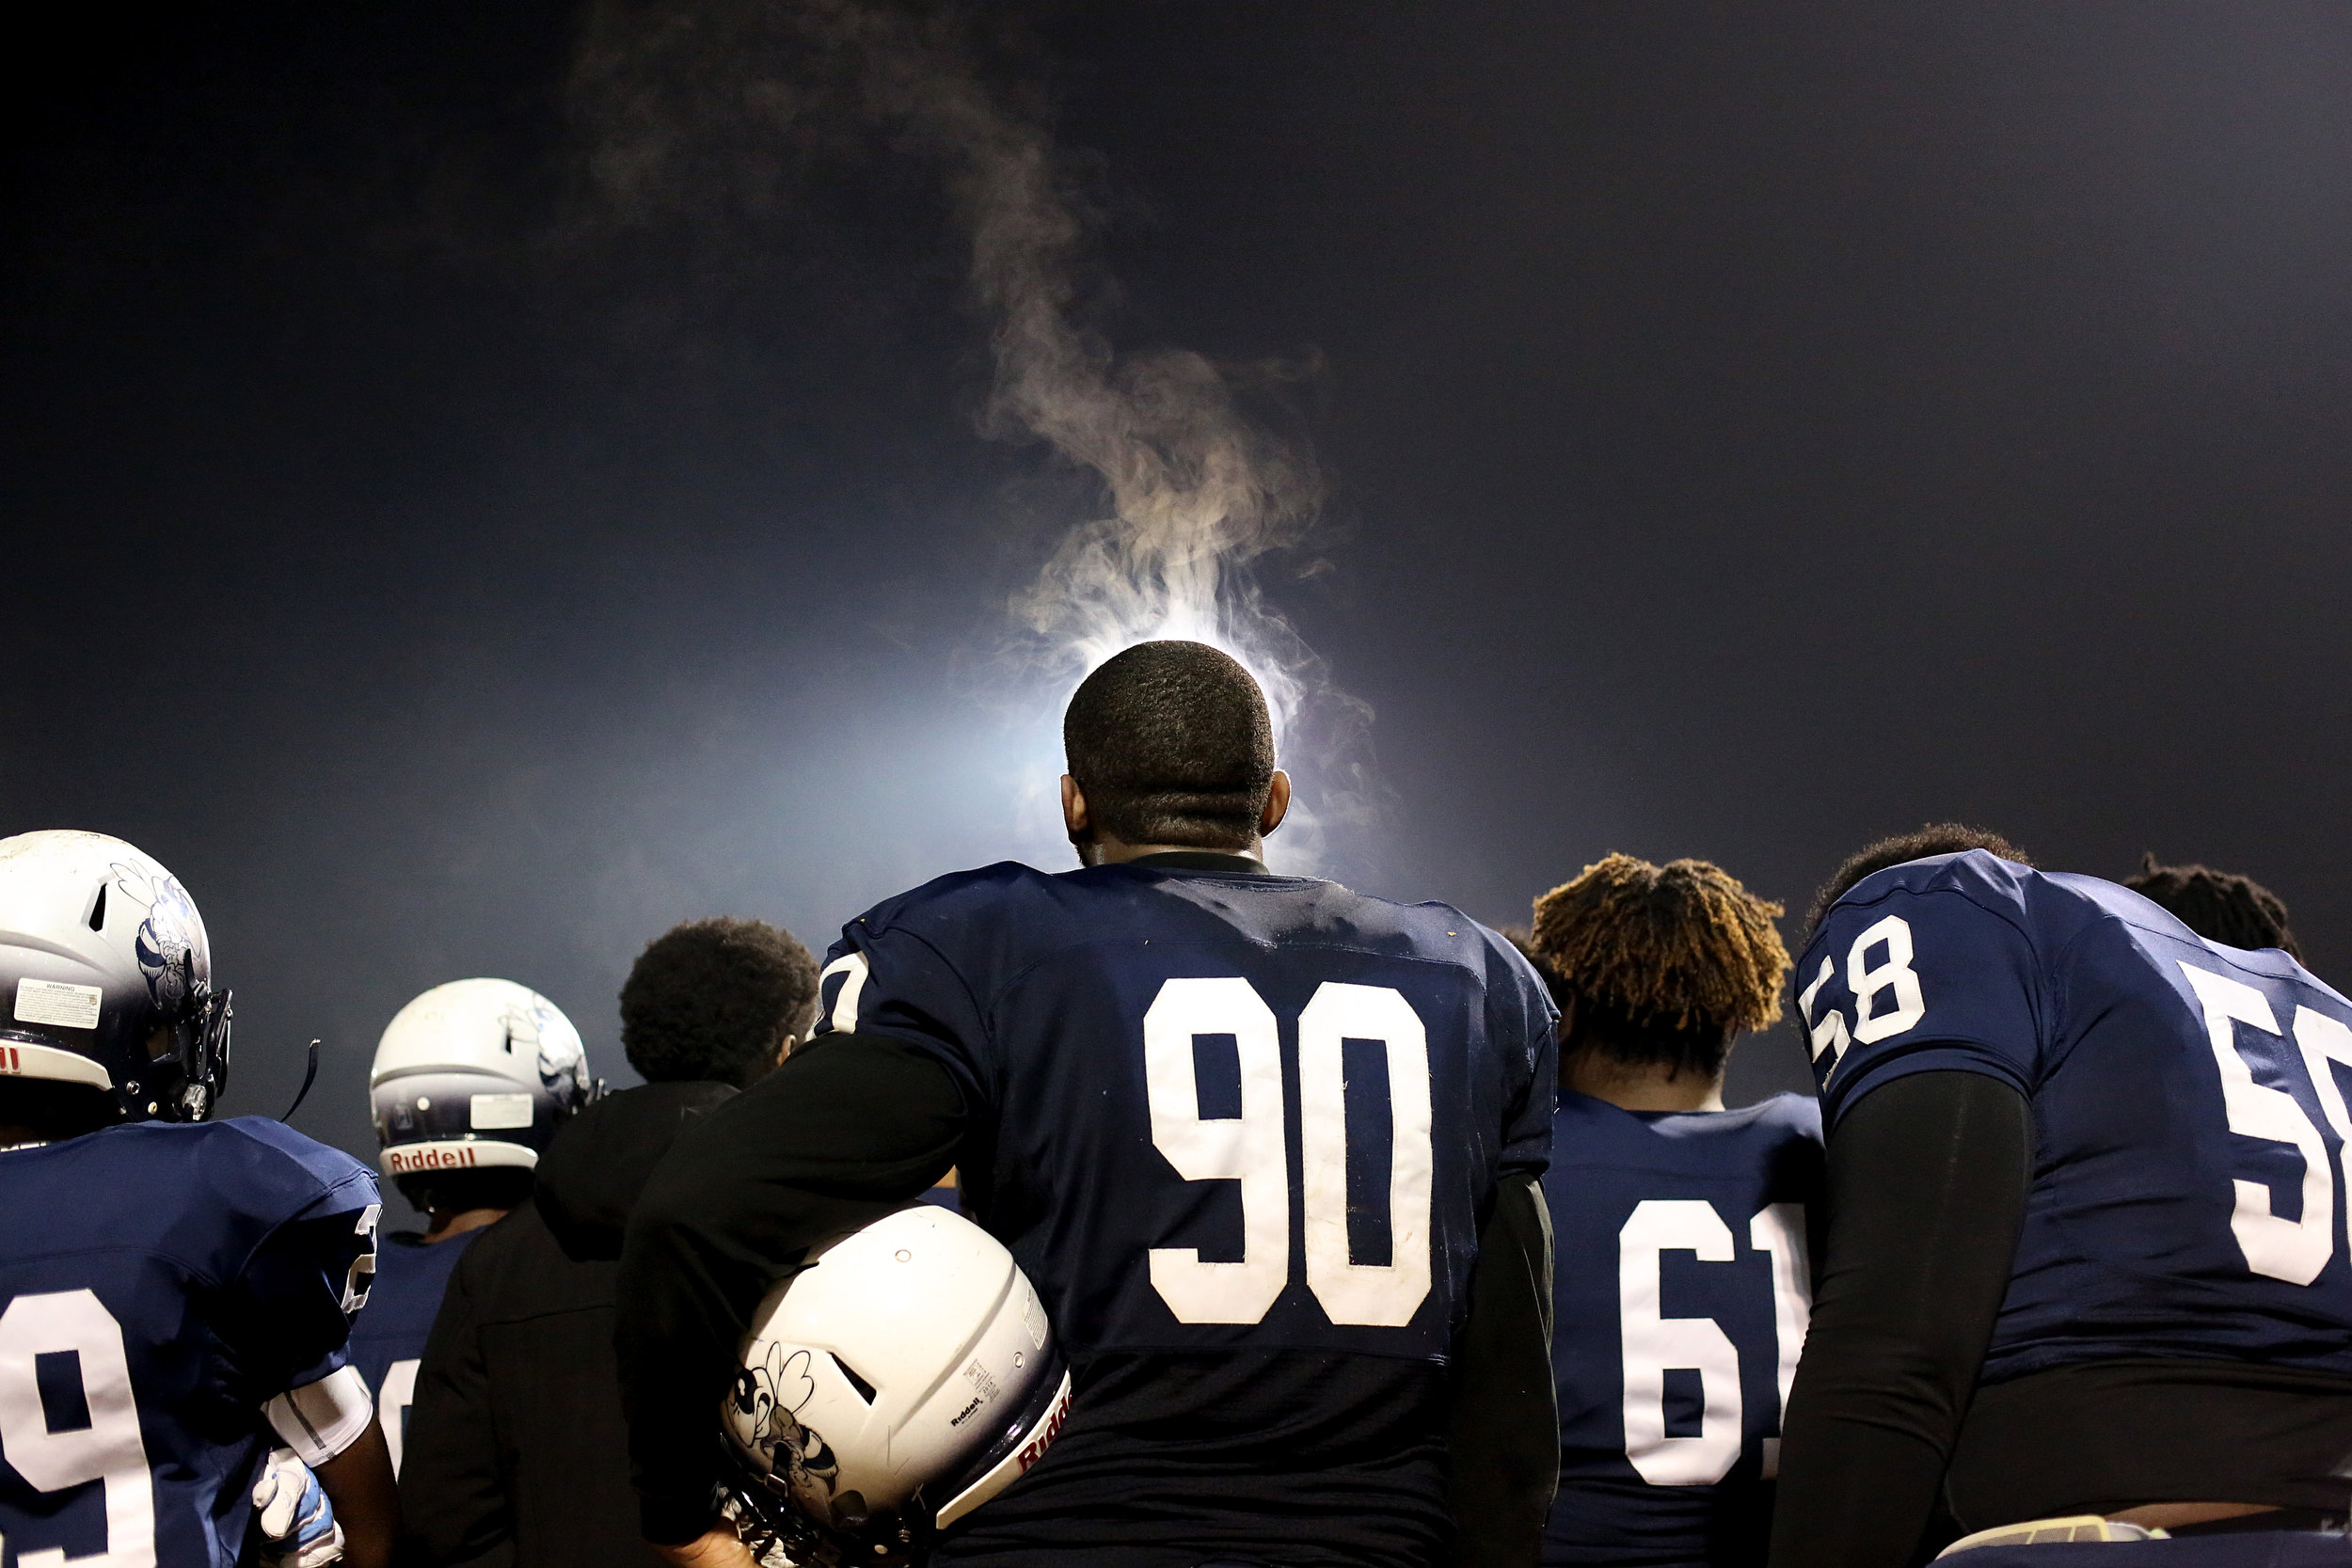 Steam rises from the head of Hillside High School's David Gray, center, as he and teammates huddle during halftime of a Class 4A playoff game against Hoggard High School, Nov. 18, 2016, at Hillside High School's Russell E. Blunt Stadium in Durham, N.C. Hoggard won, 38-34, ending Hillside's season.